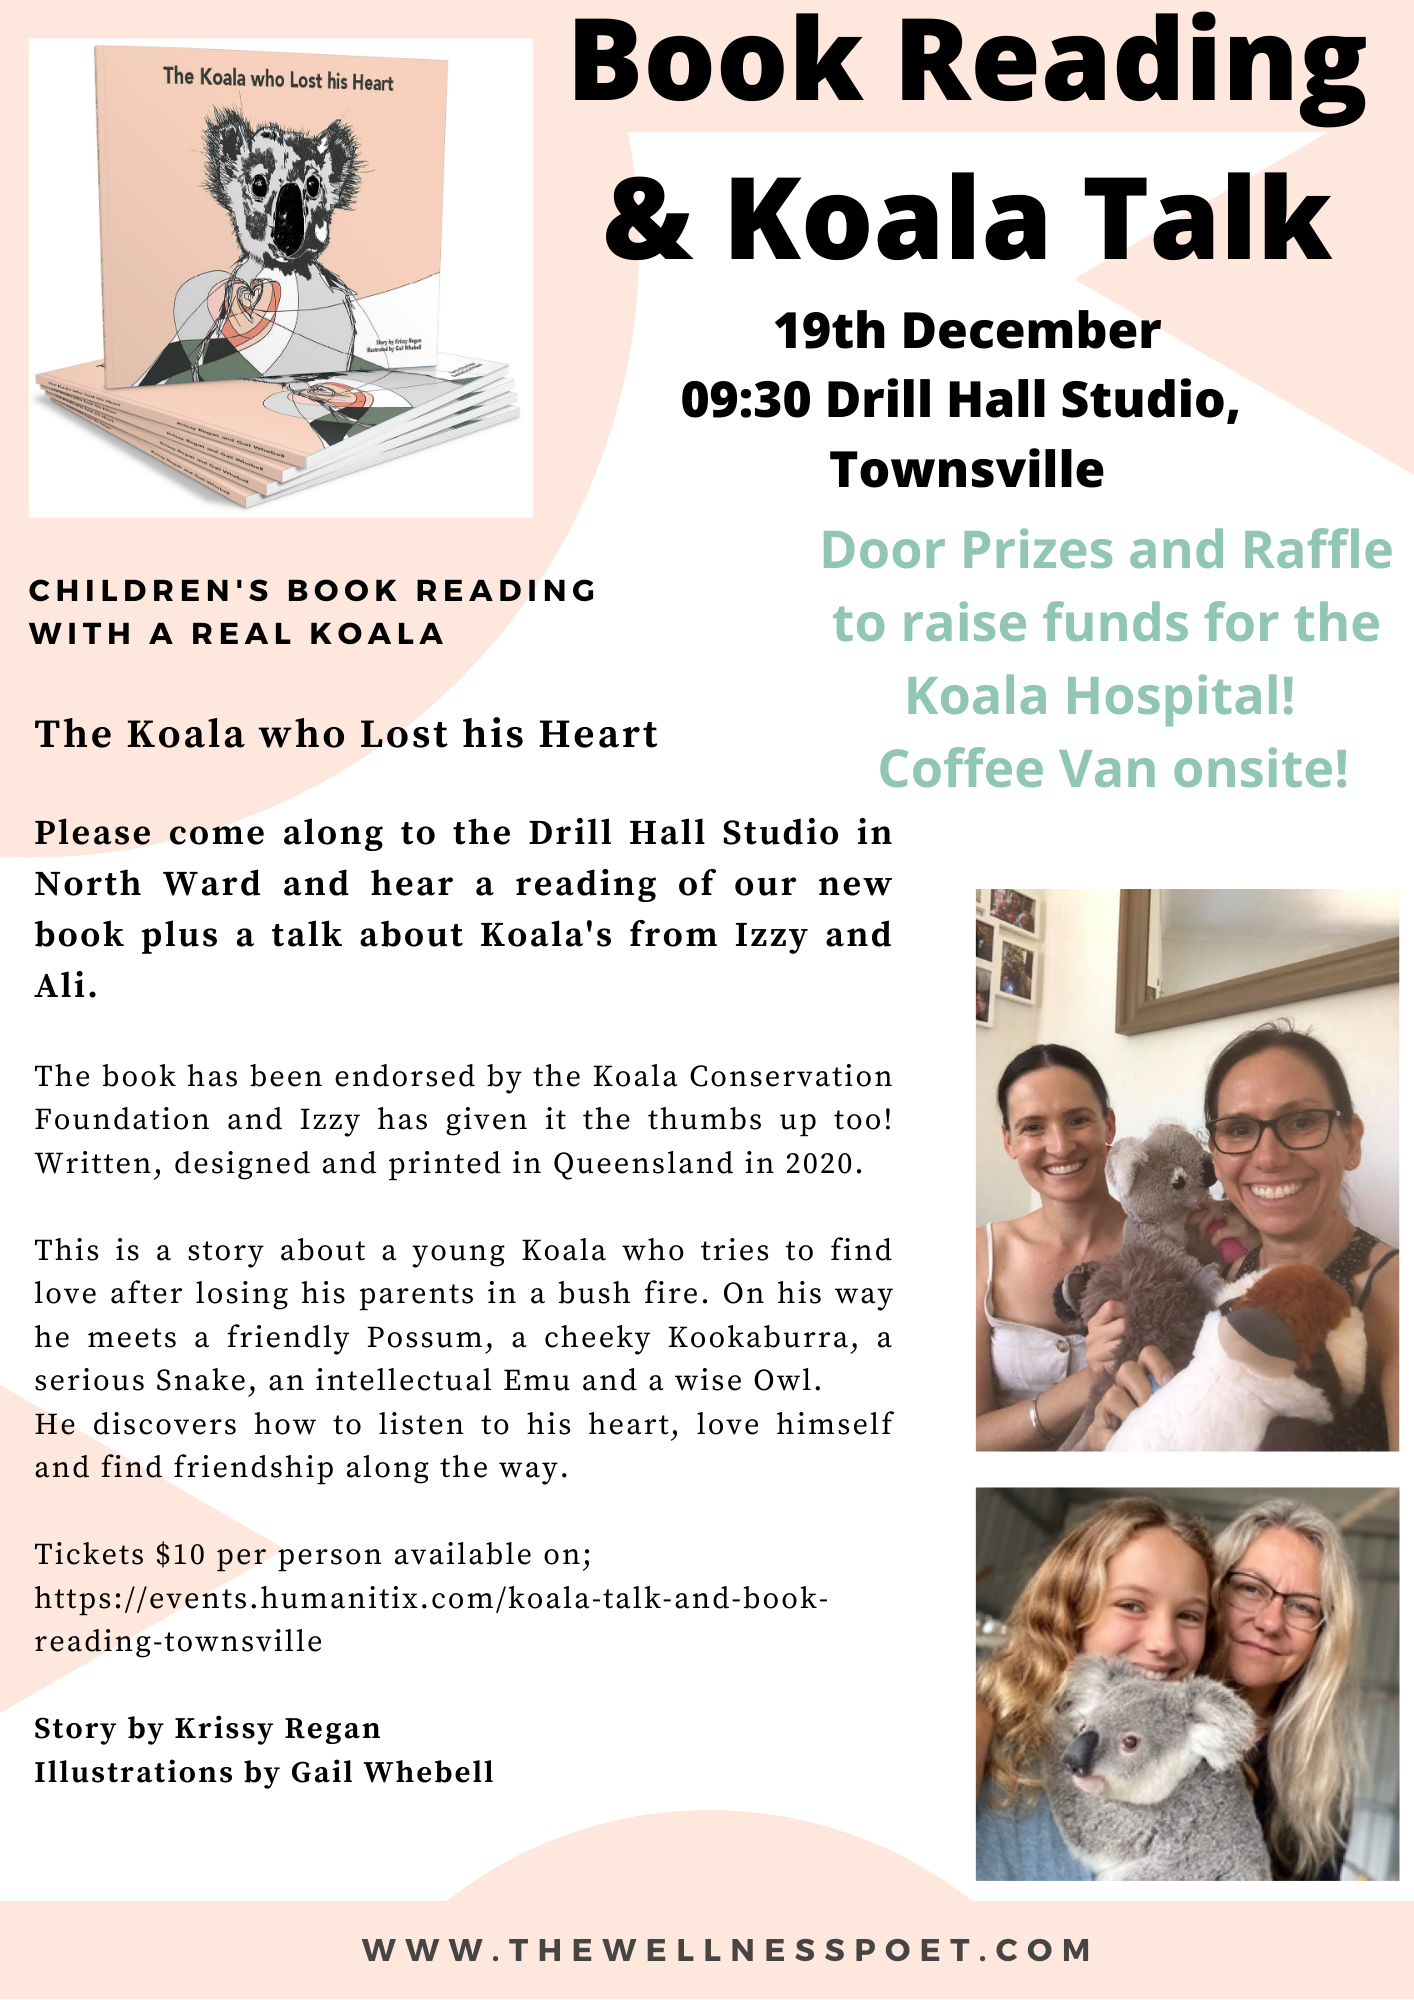 Townsville Book Reading - The Drill Hall